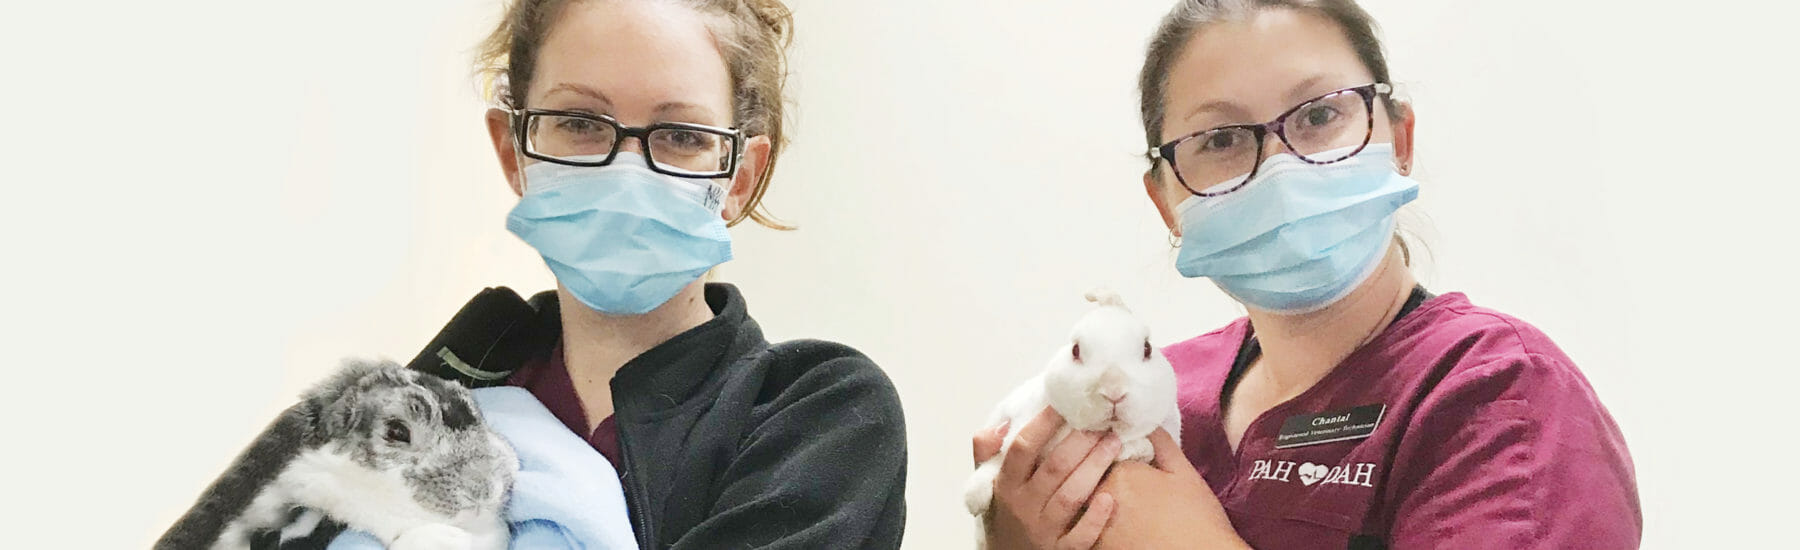 Two veterinarian employees holding rabbits